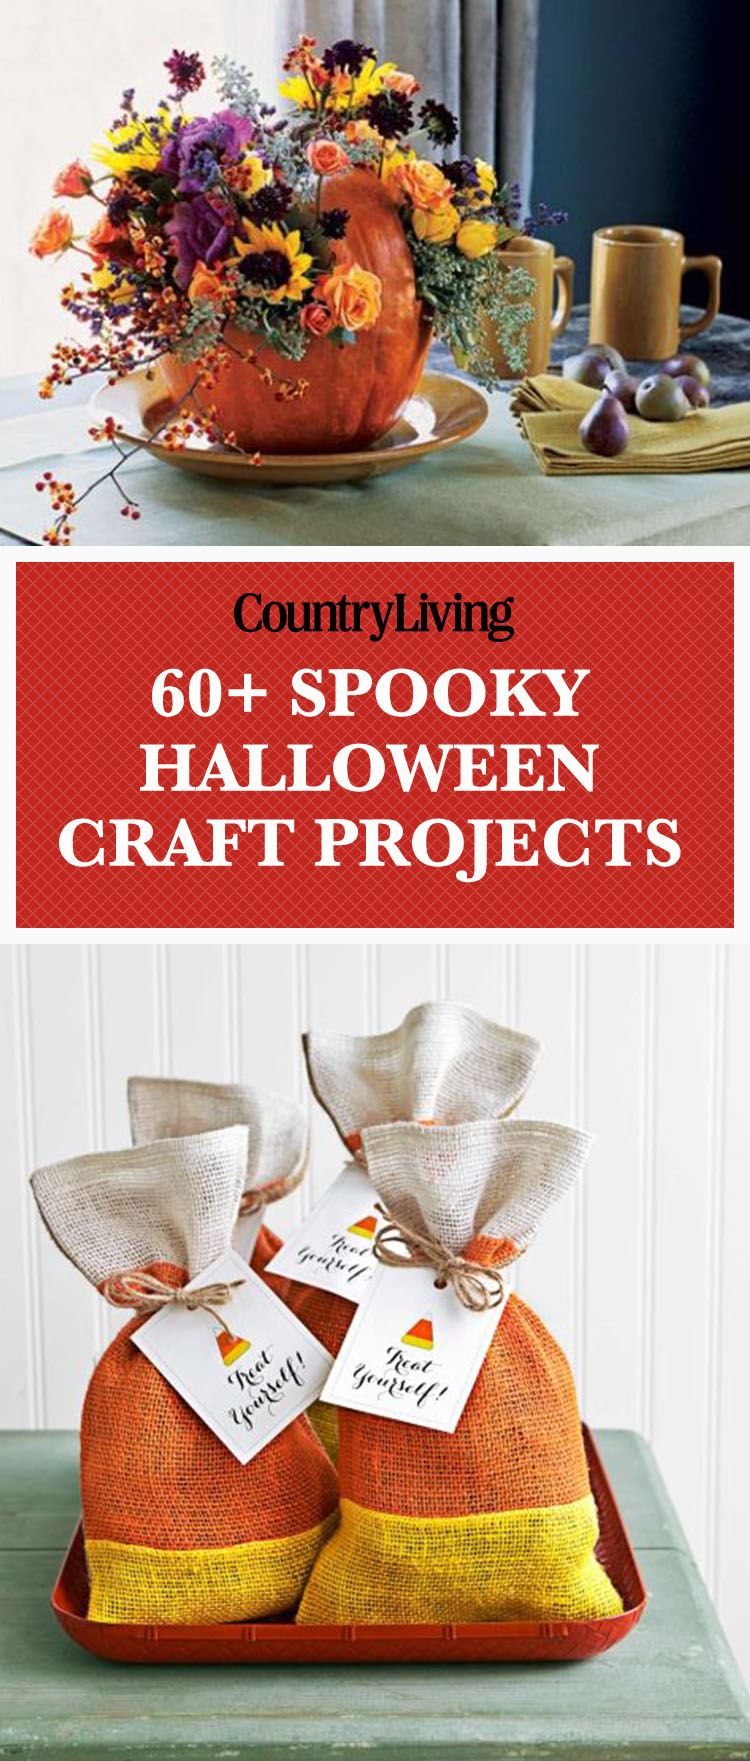 66 easy halloween craft ideas halloween diy craft projects for adults kids - Diy Halloween Decorations For Kids